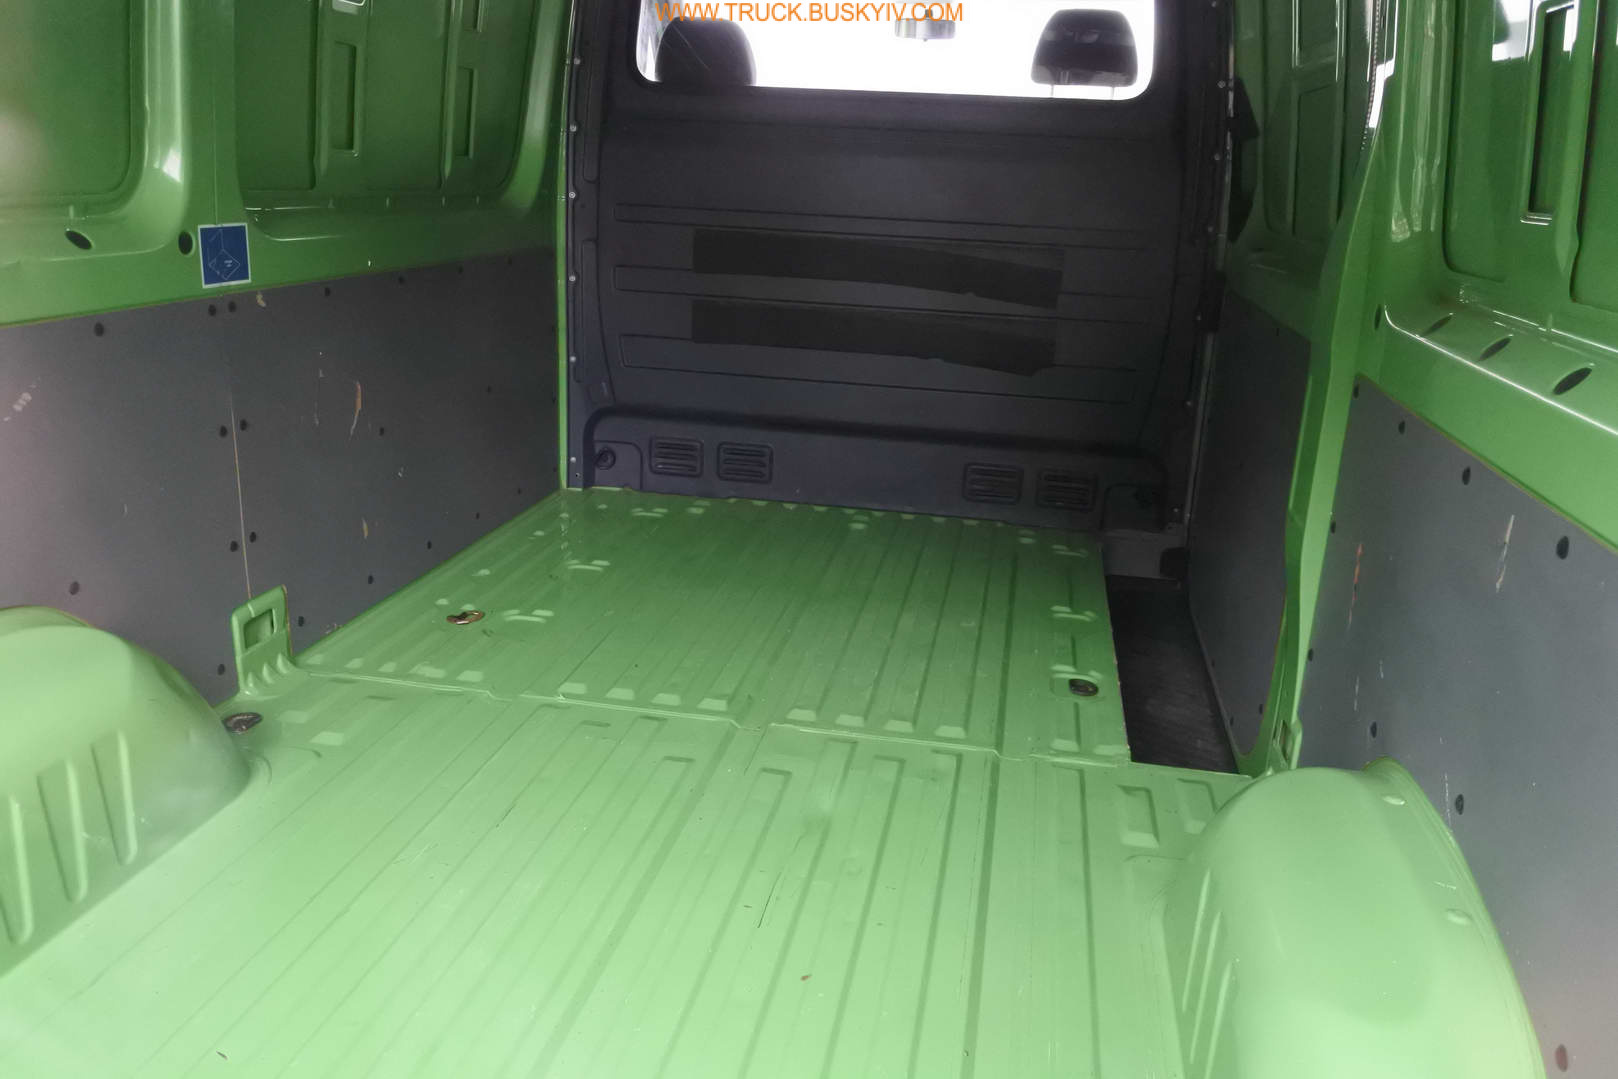 2012_mb_sprinter313_green_15